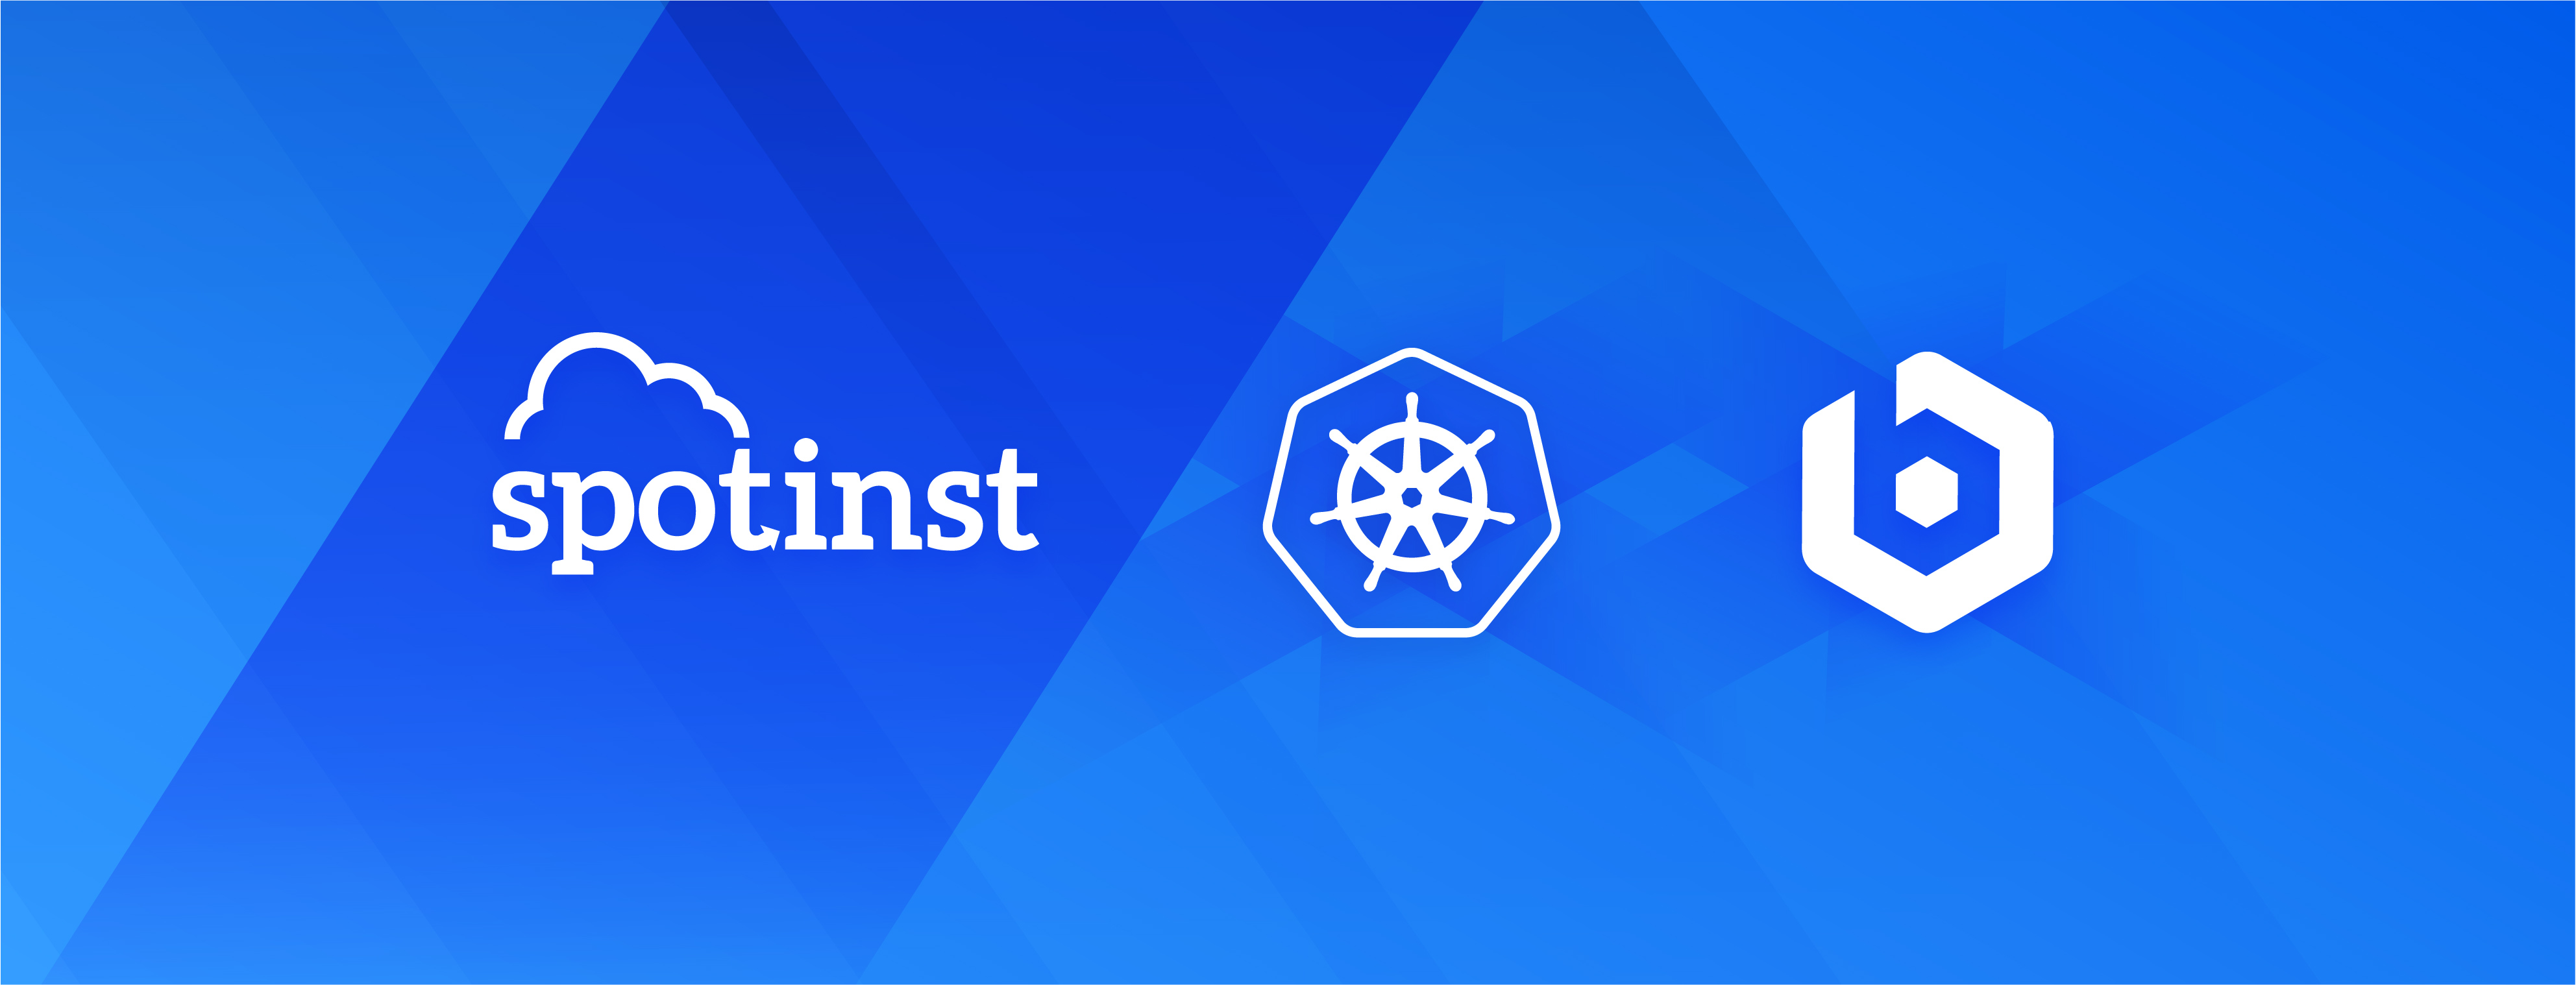 Make Existing Apps Faster, More Scalable, And Cost Effective To Operate With Stacksmith, Kubernetes & Spotinst